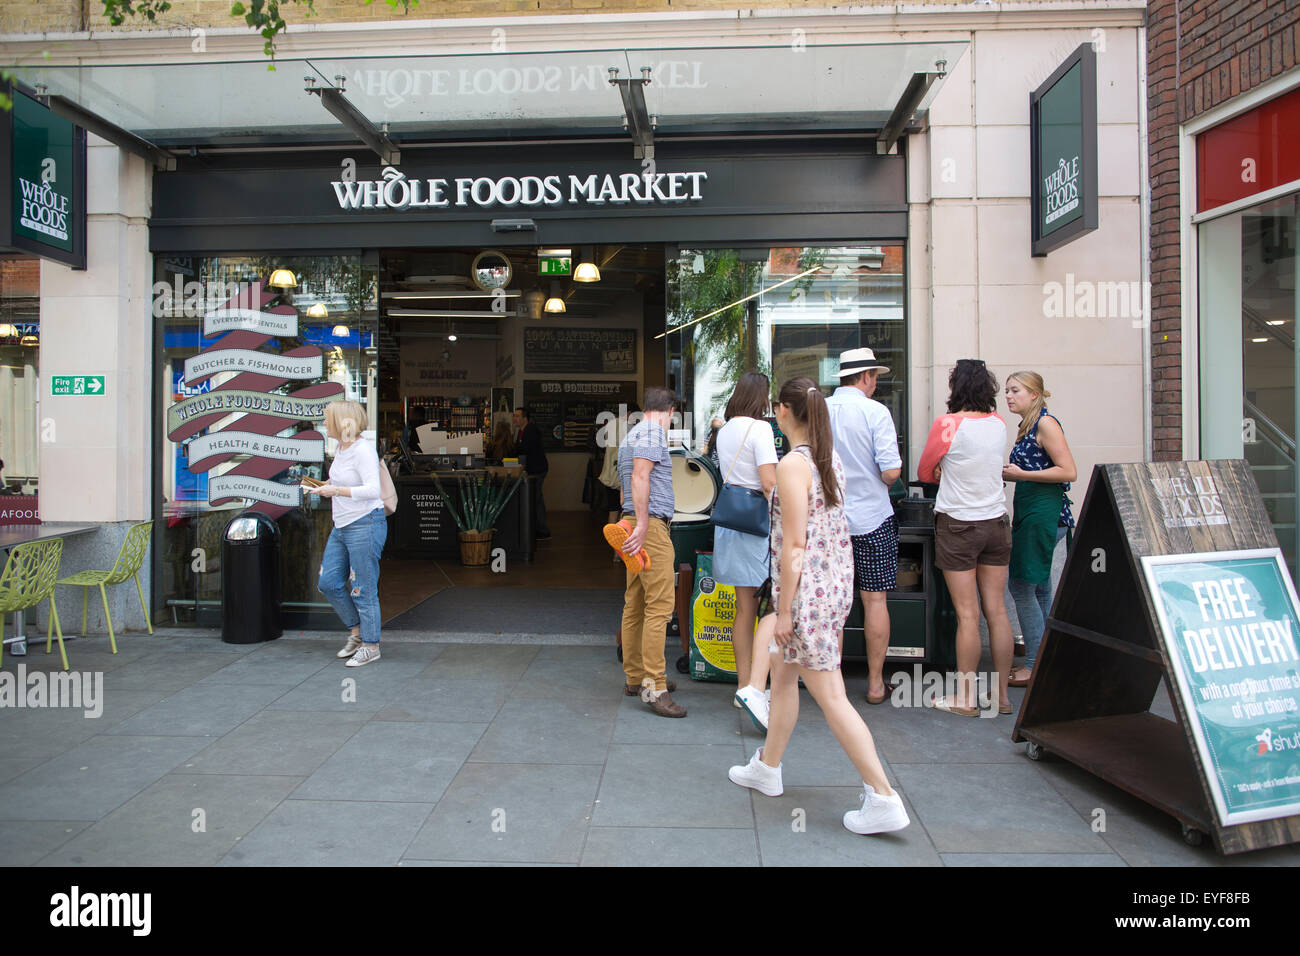 Whole Foods Market, Richmond Upon Thames, Greater London, UK Stock